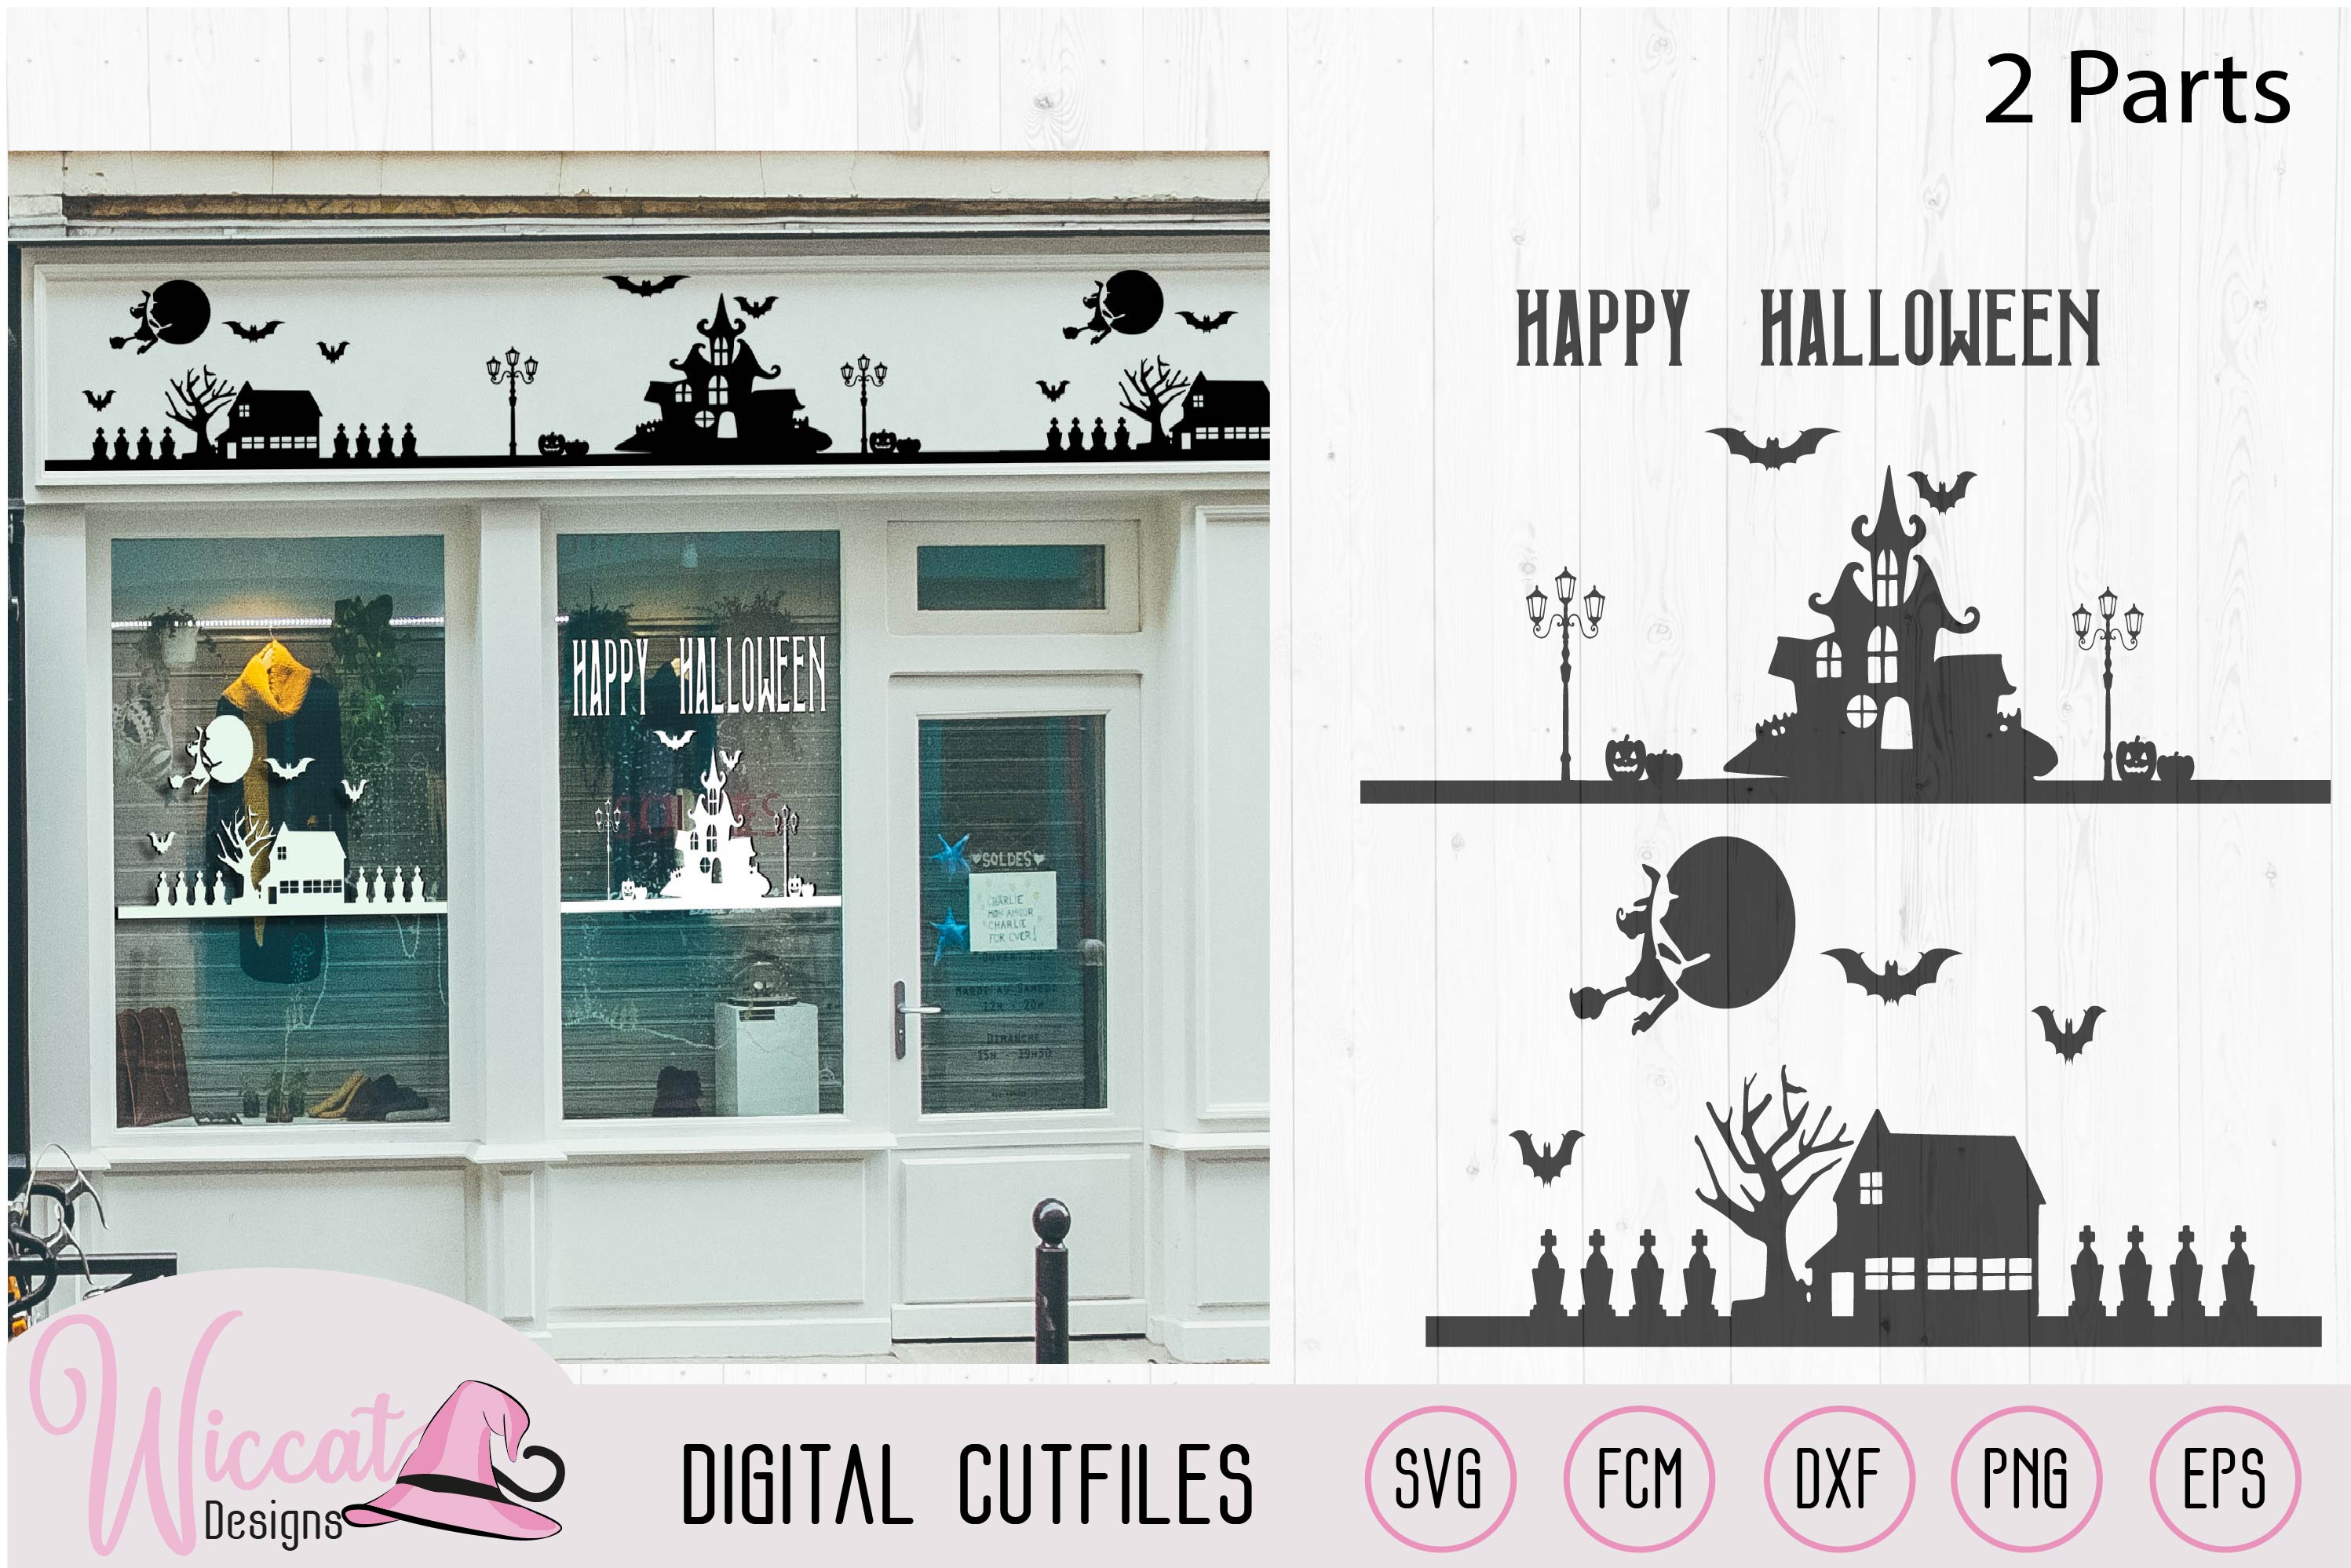 Download Free 39791 Graficocrafts SVG Cut Files